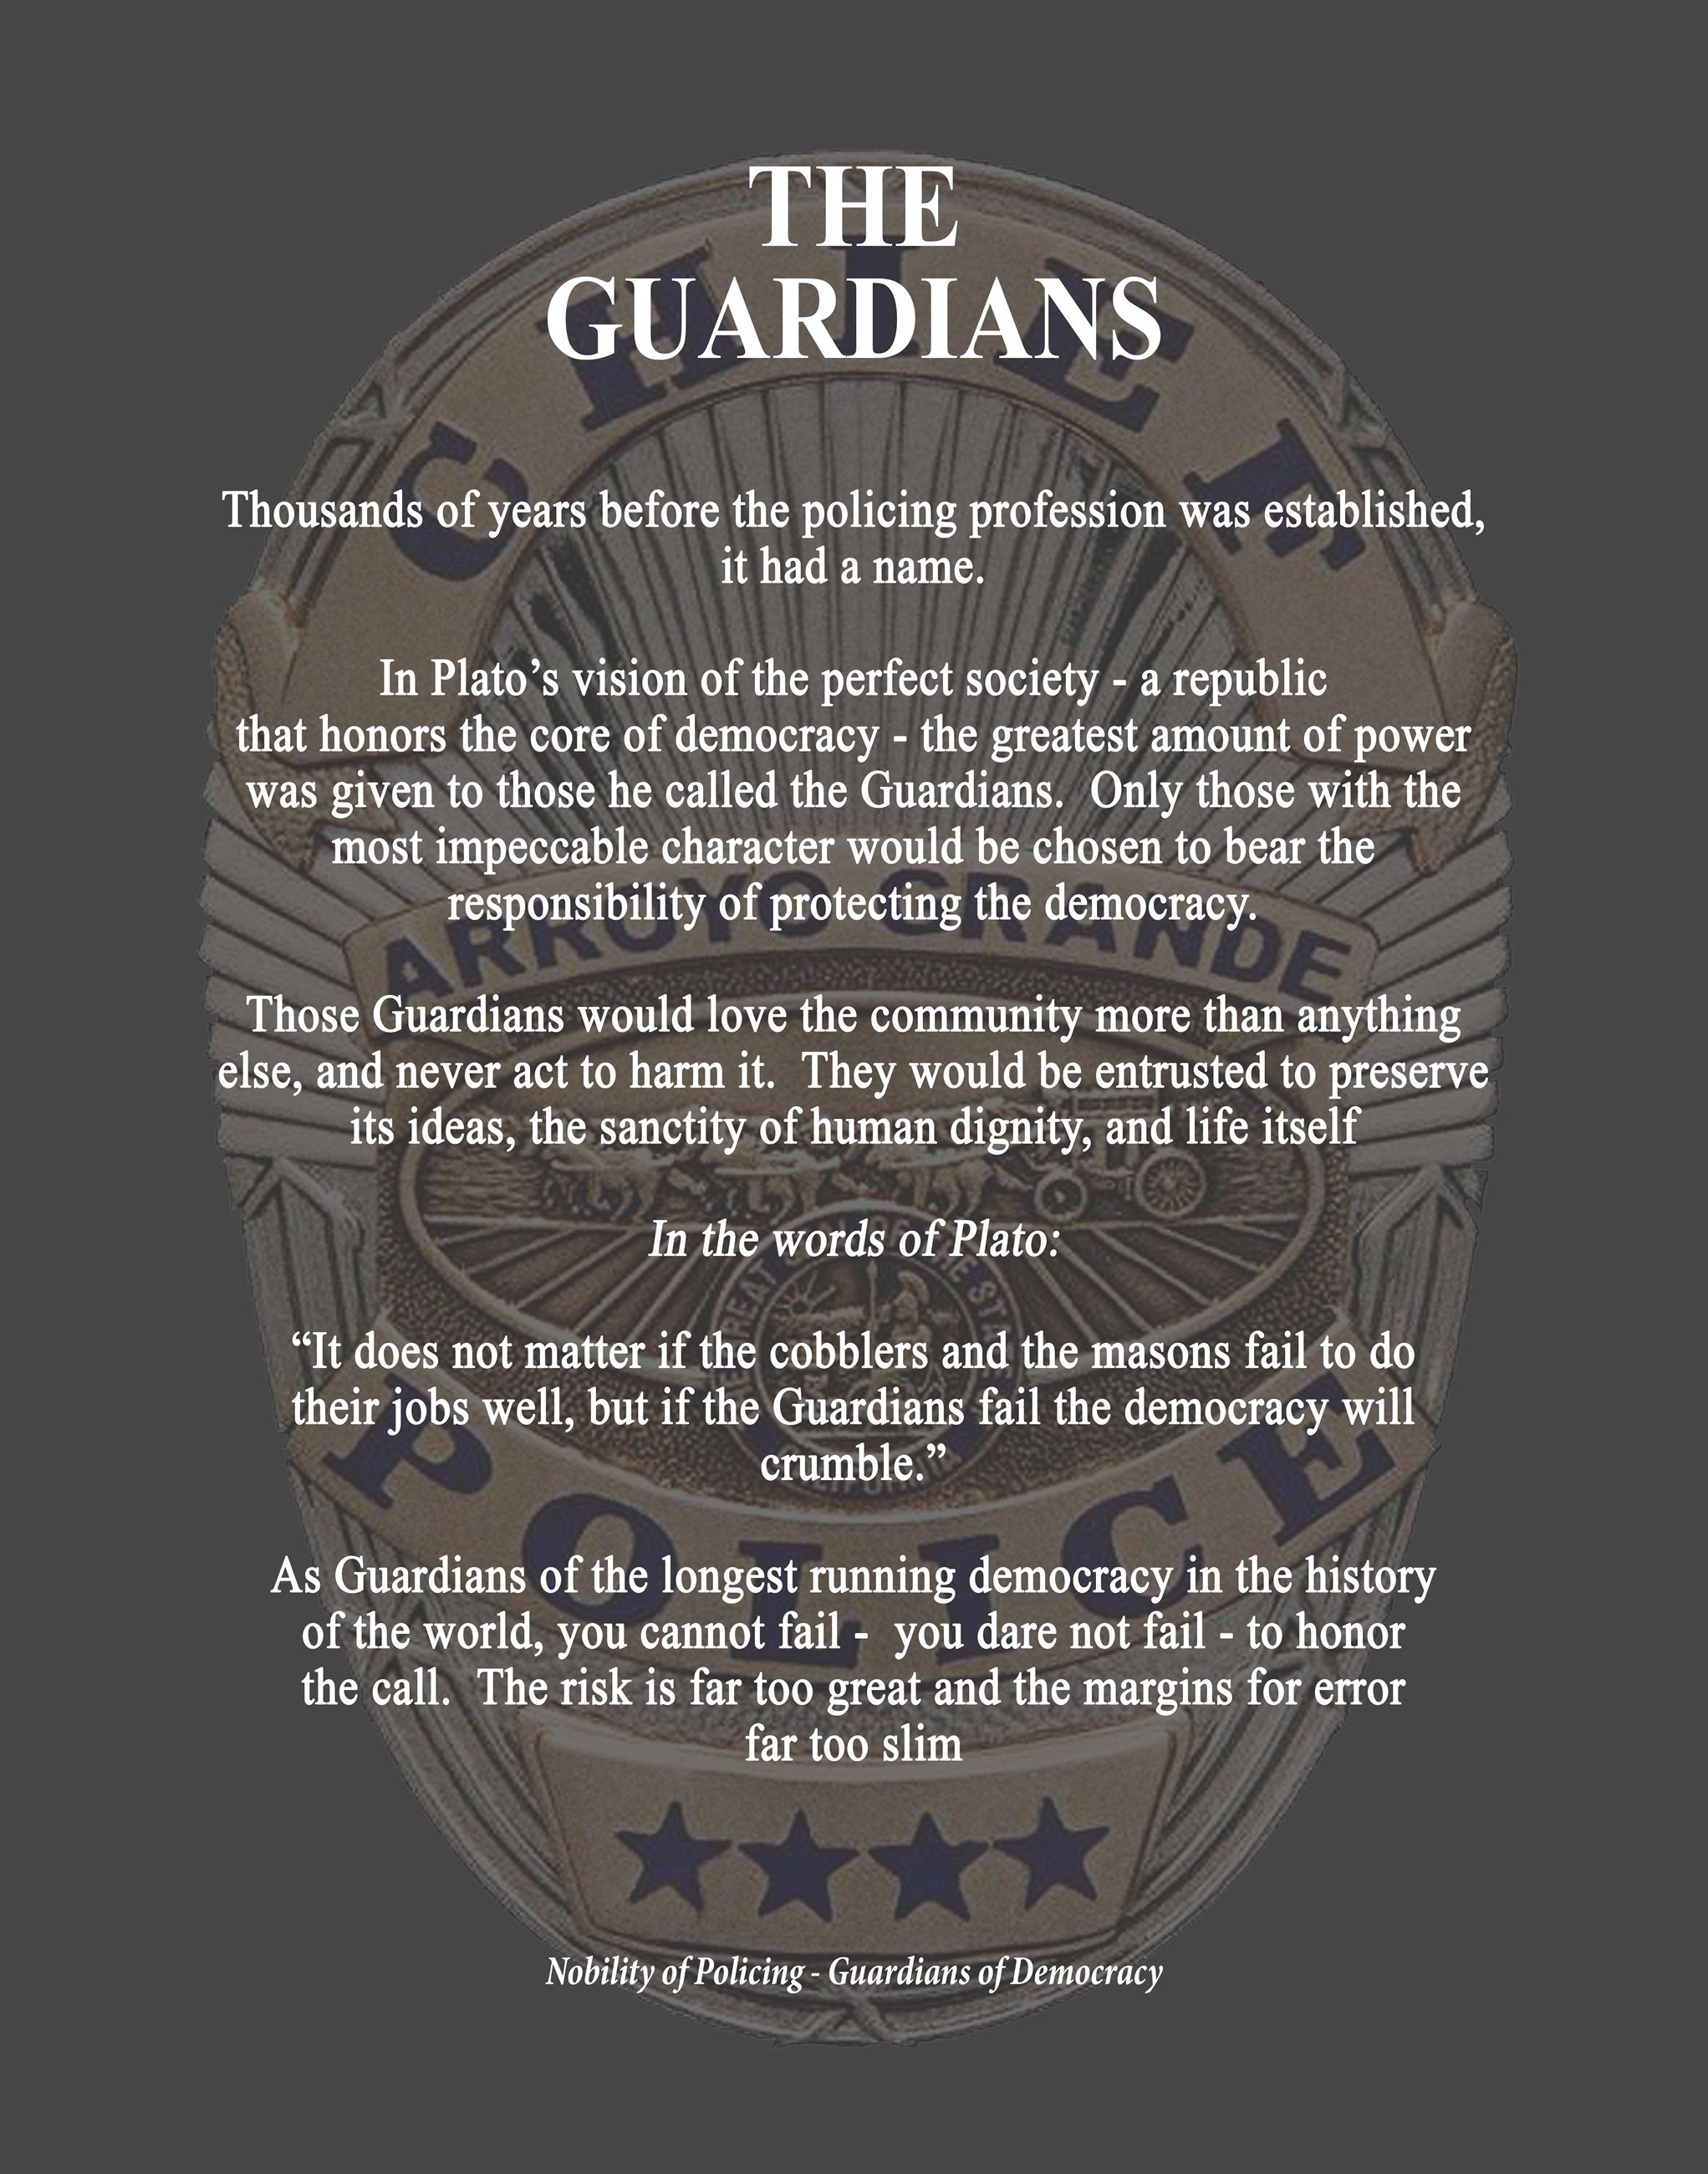 The Guardians